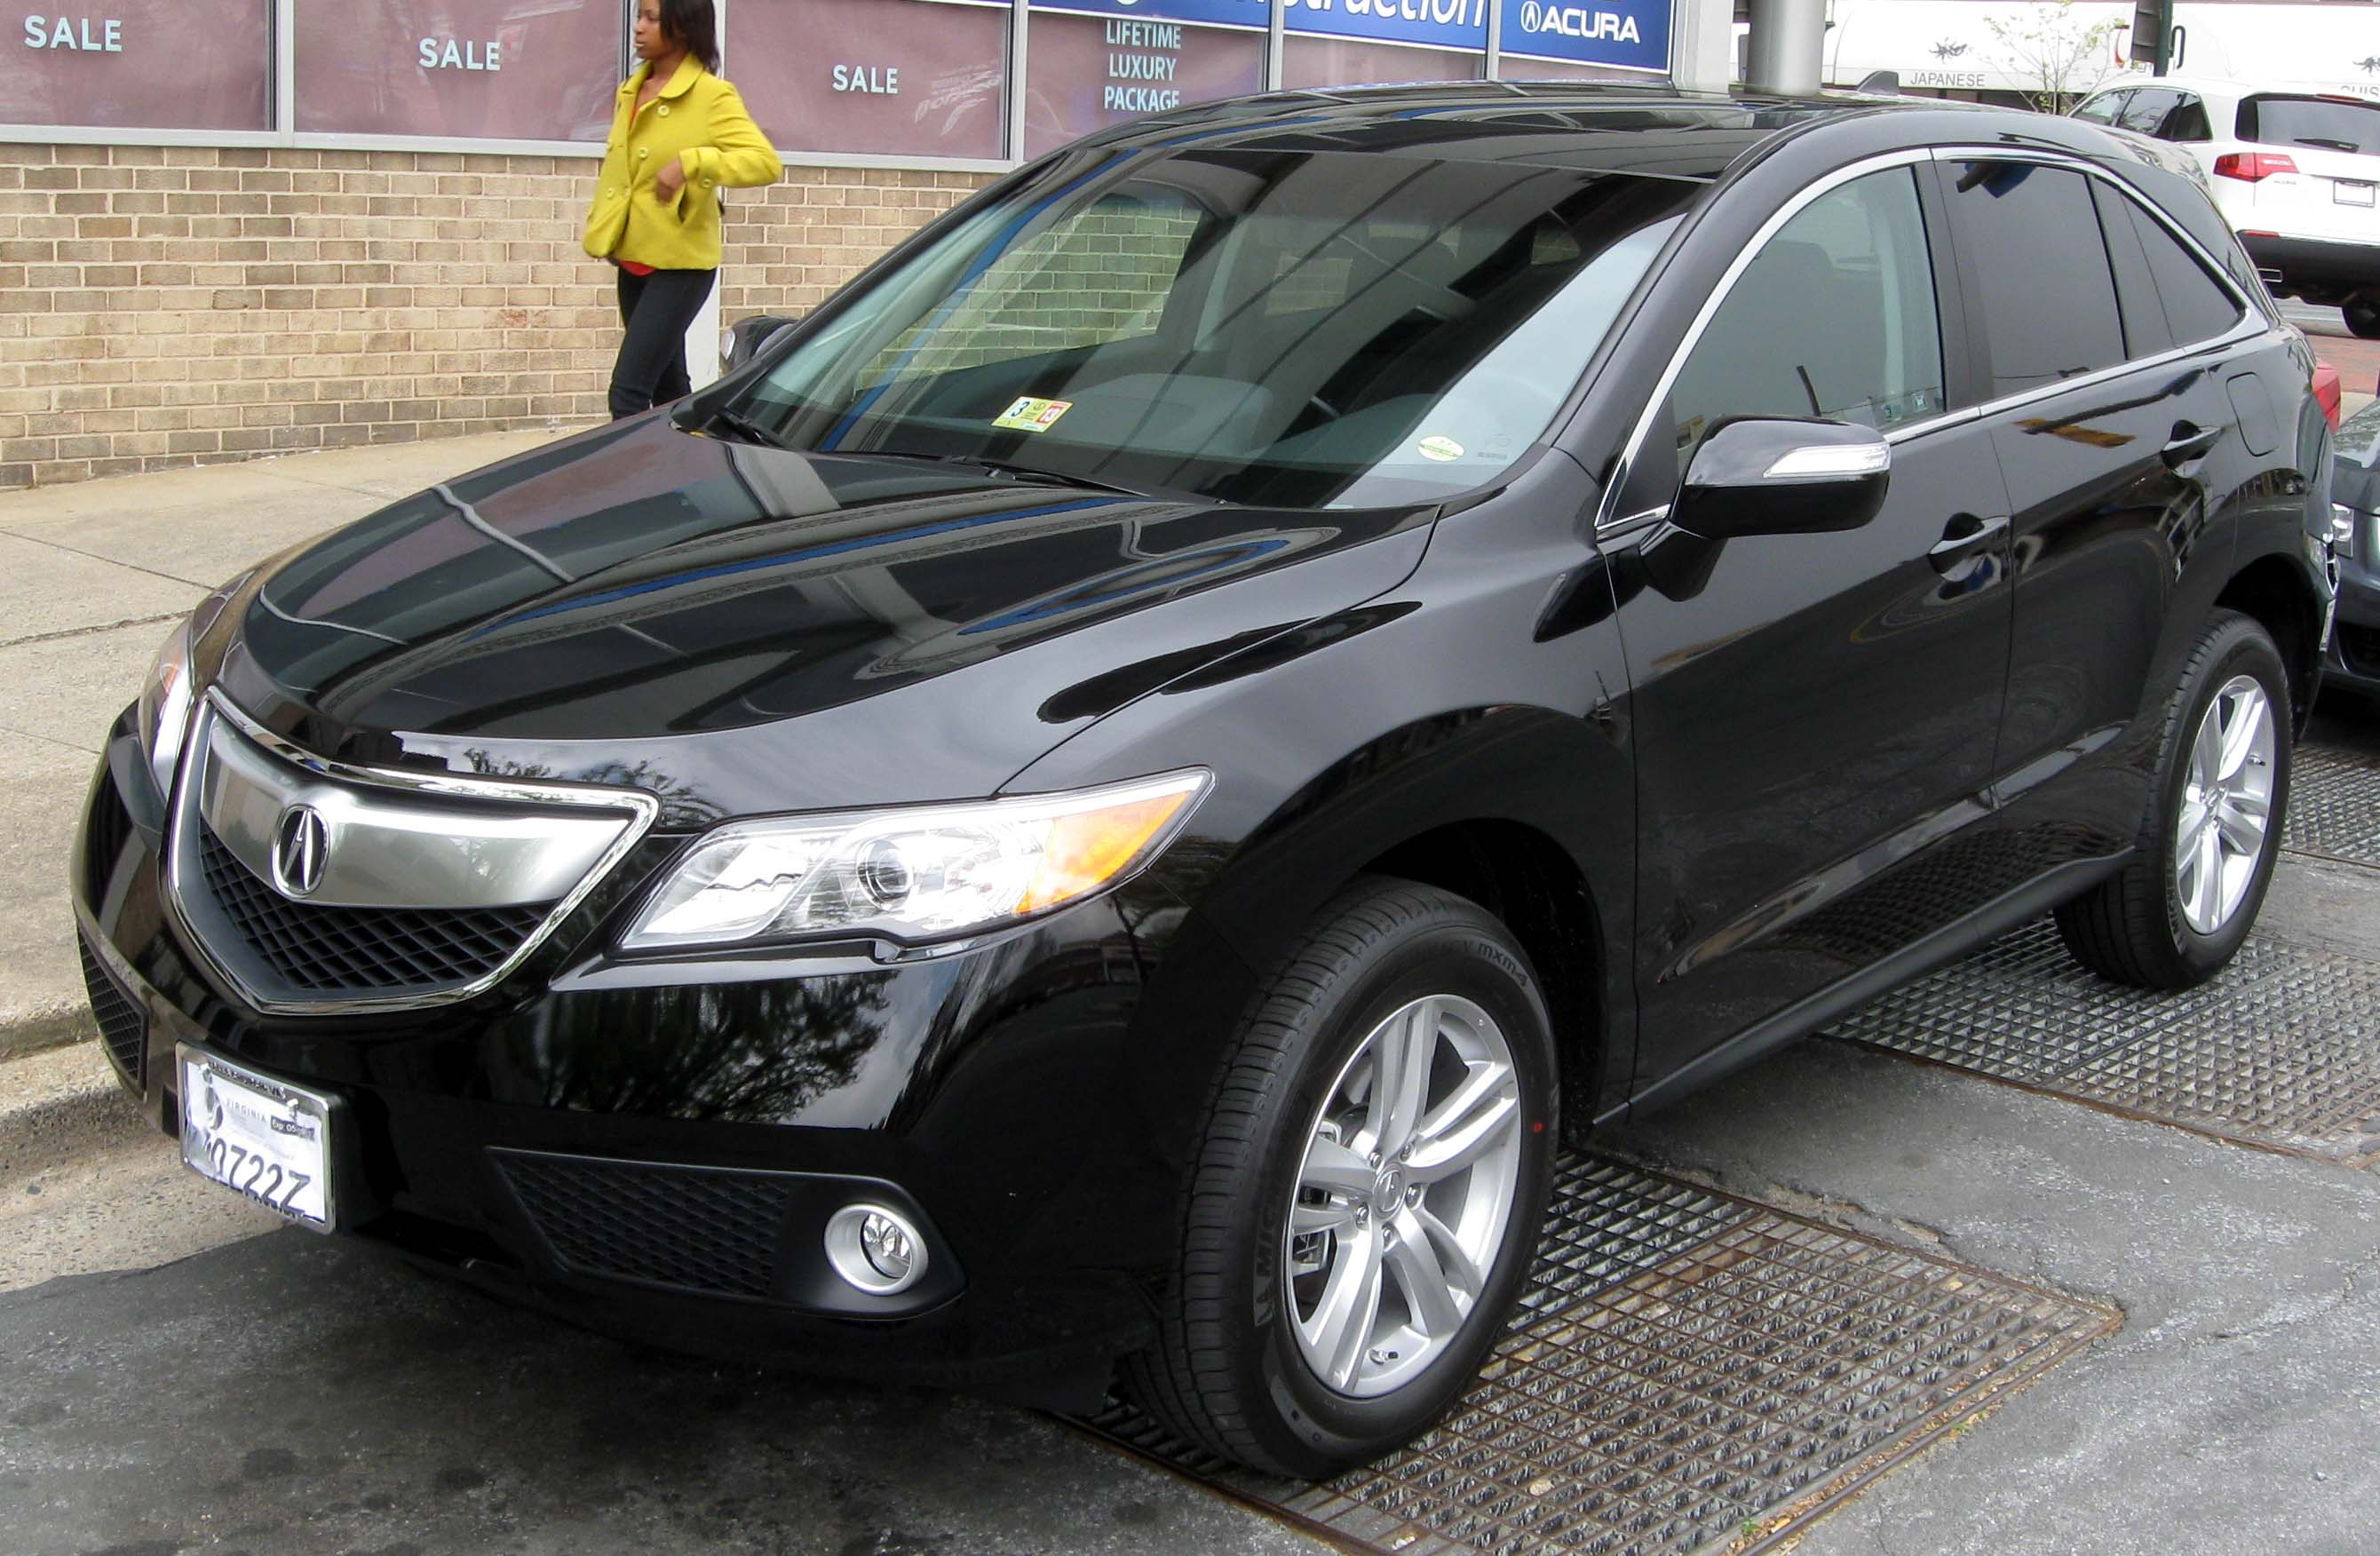 in carfinder for md sale of auctions title rdx right en silver online copart certificate washington on view auto acura lot dc